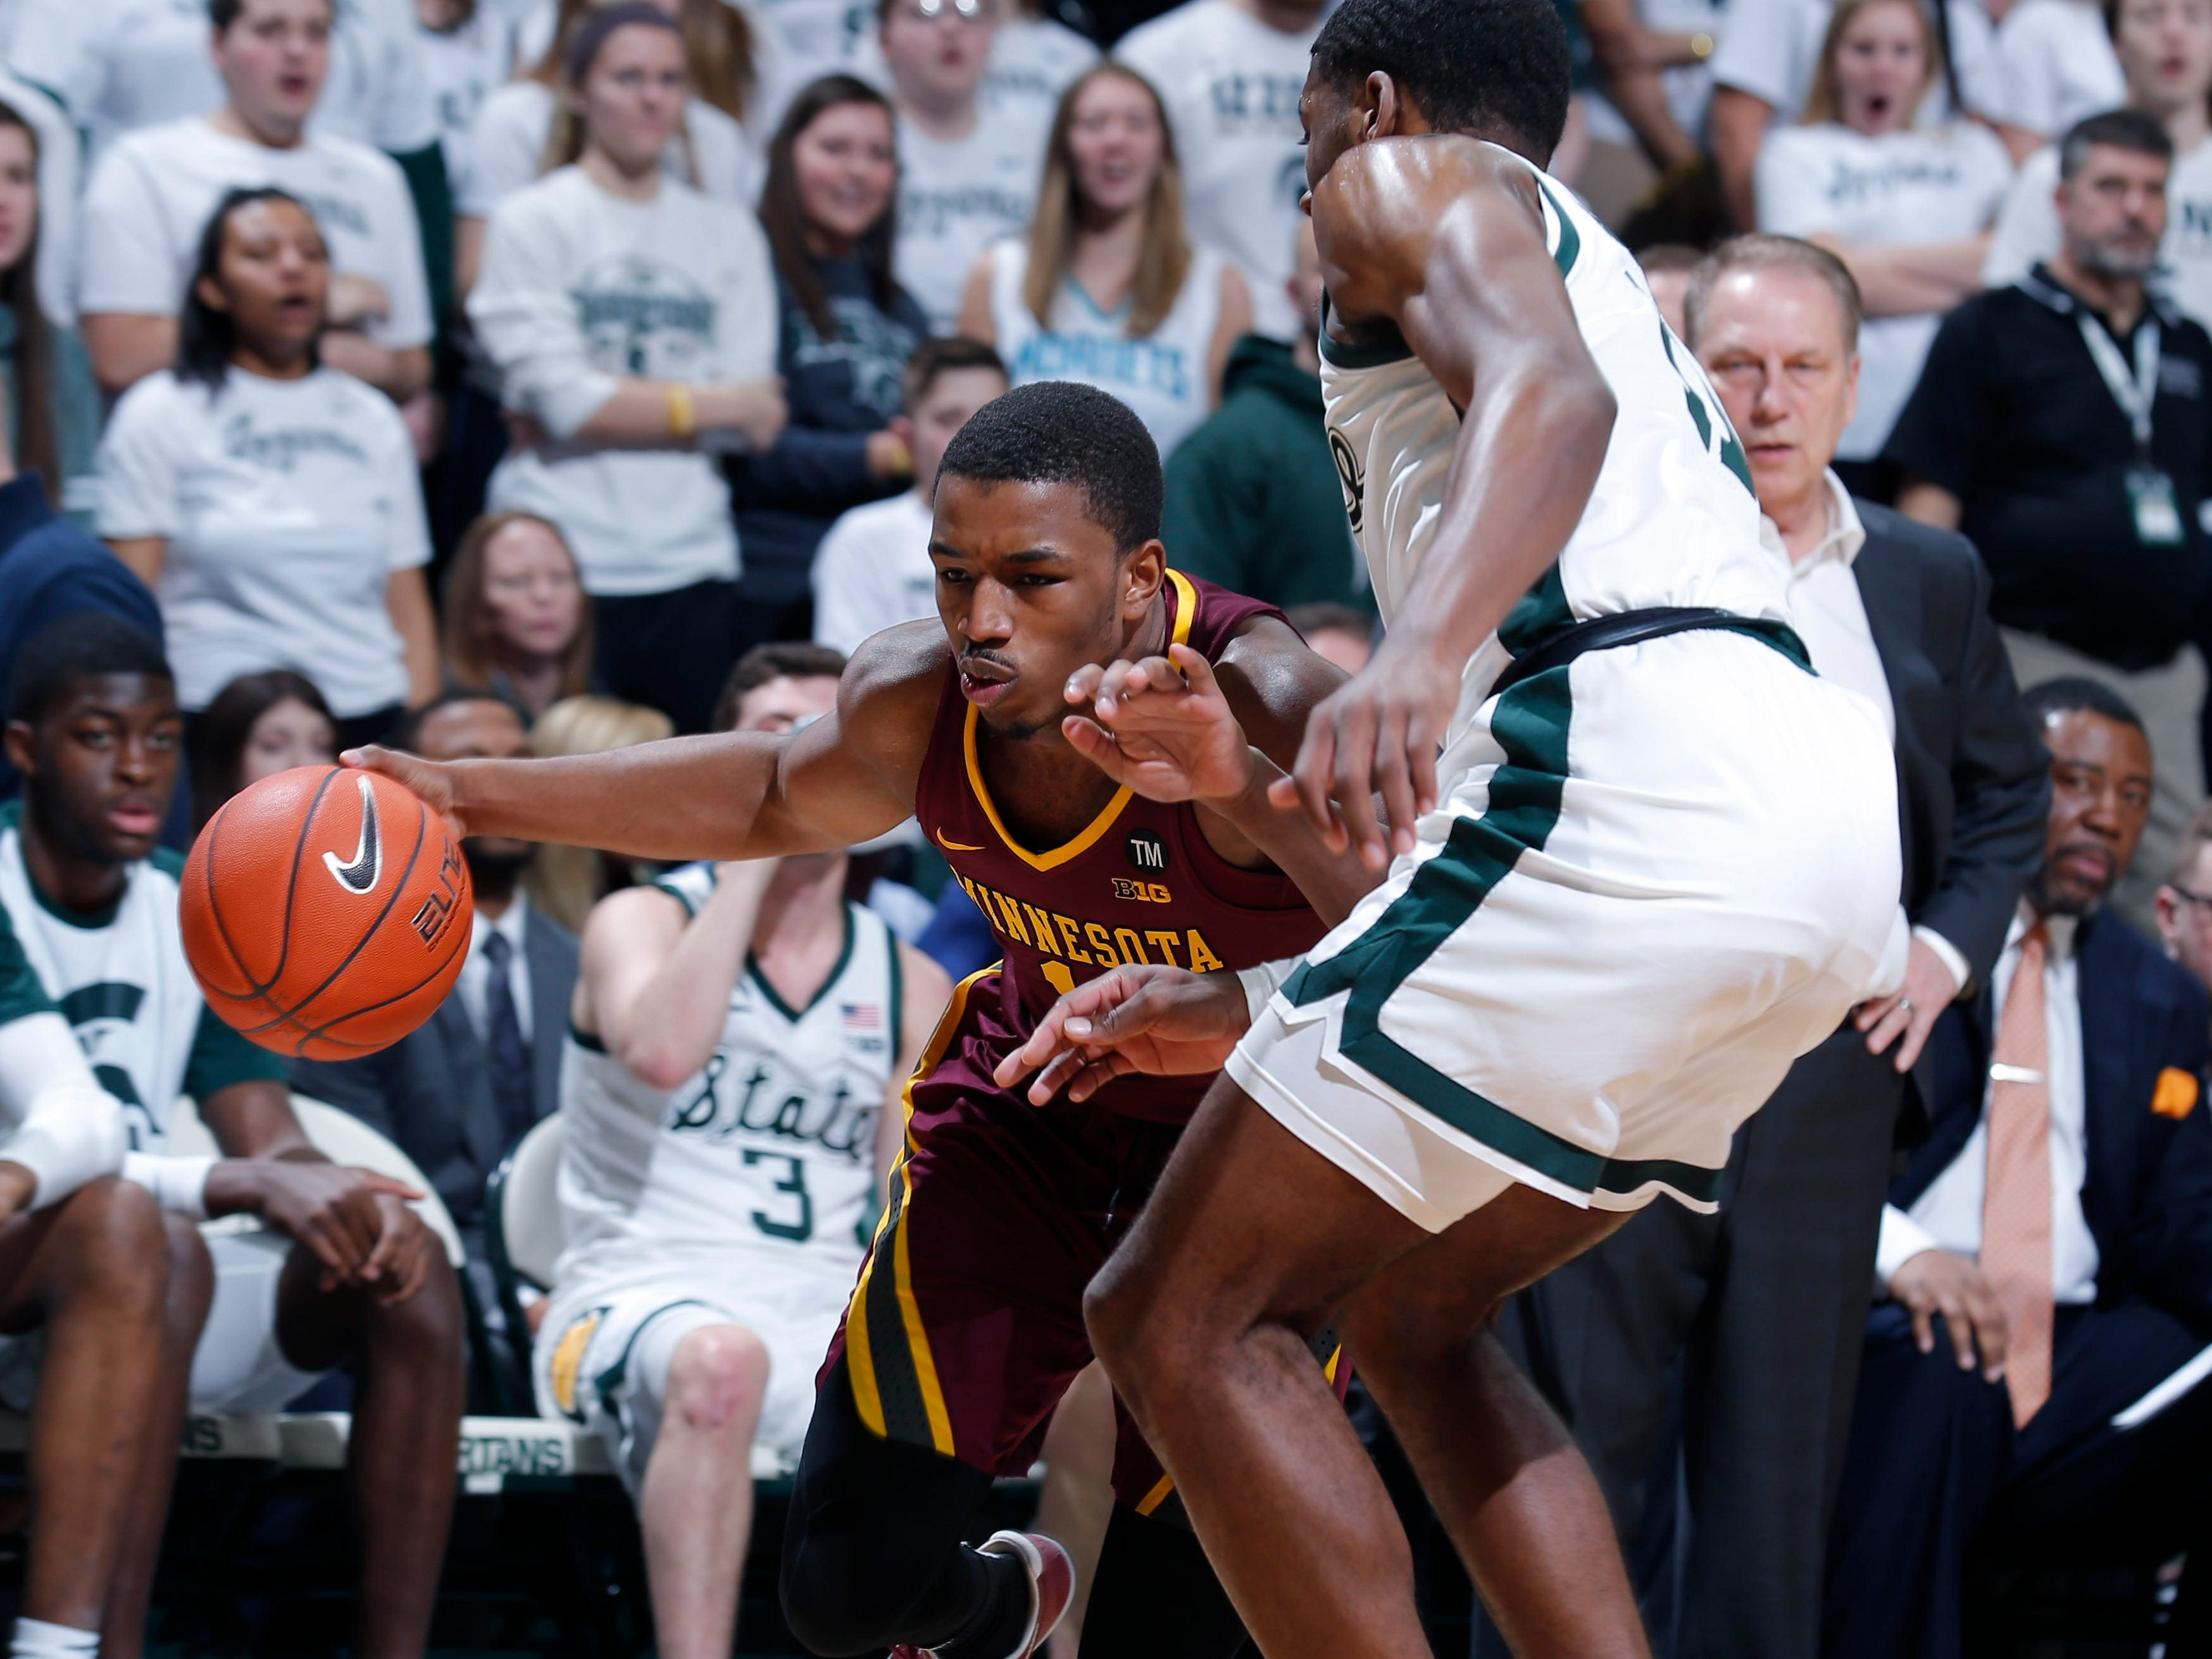 Minnesota's Isaiah Washingotn, left, drives against Michigan State's Aaron Henry during the first half.